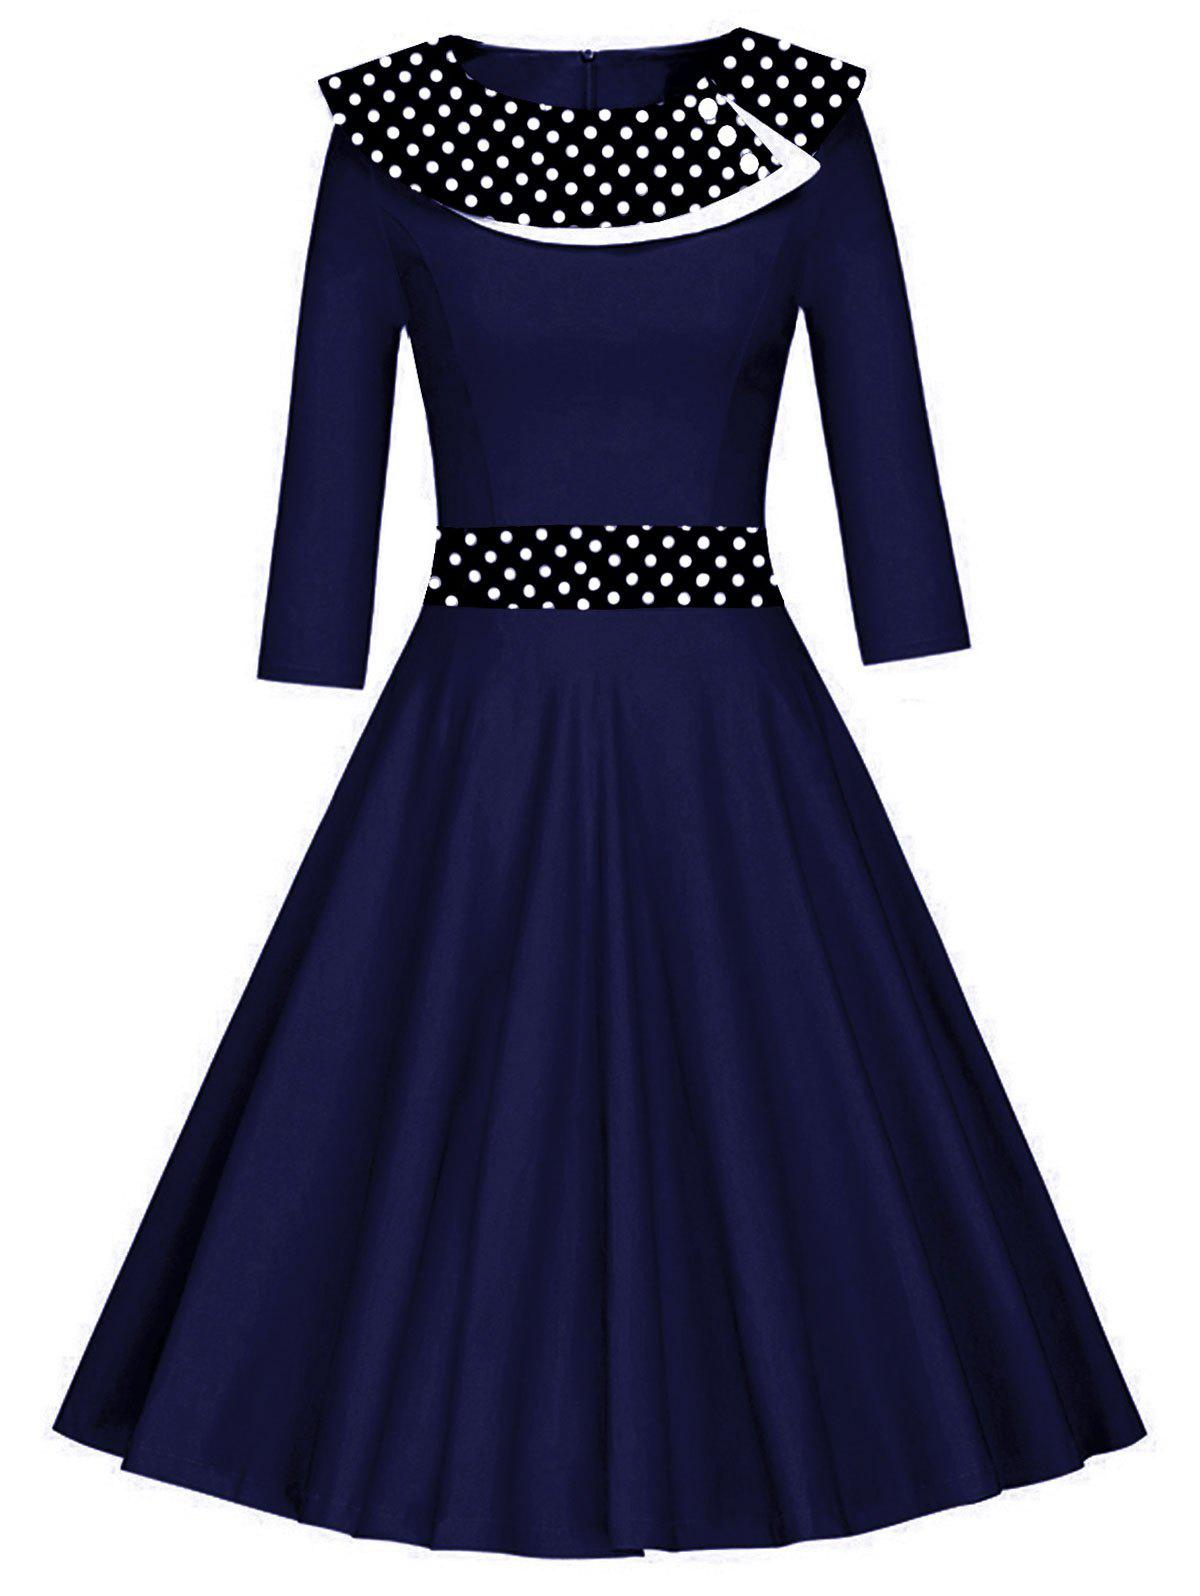 Store Vintage Polka Dot Fit and Flare Skater Dress